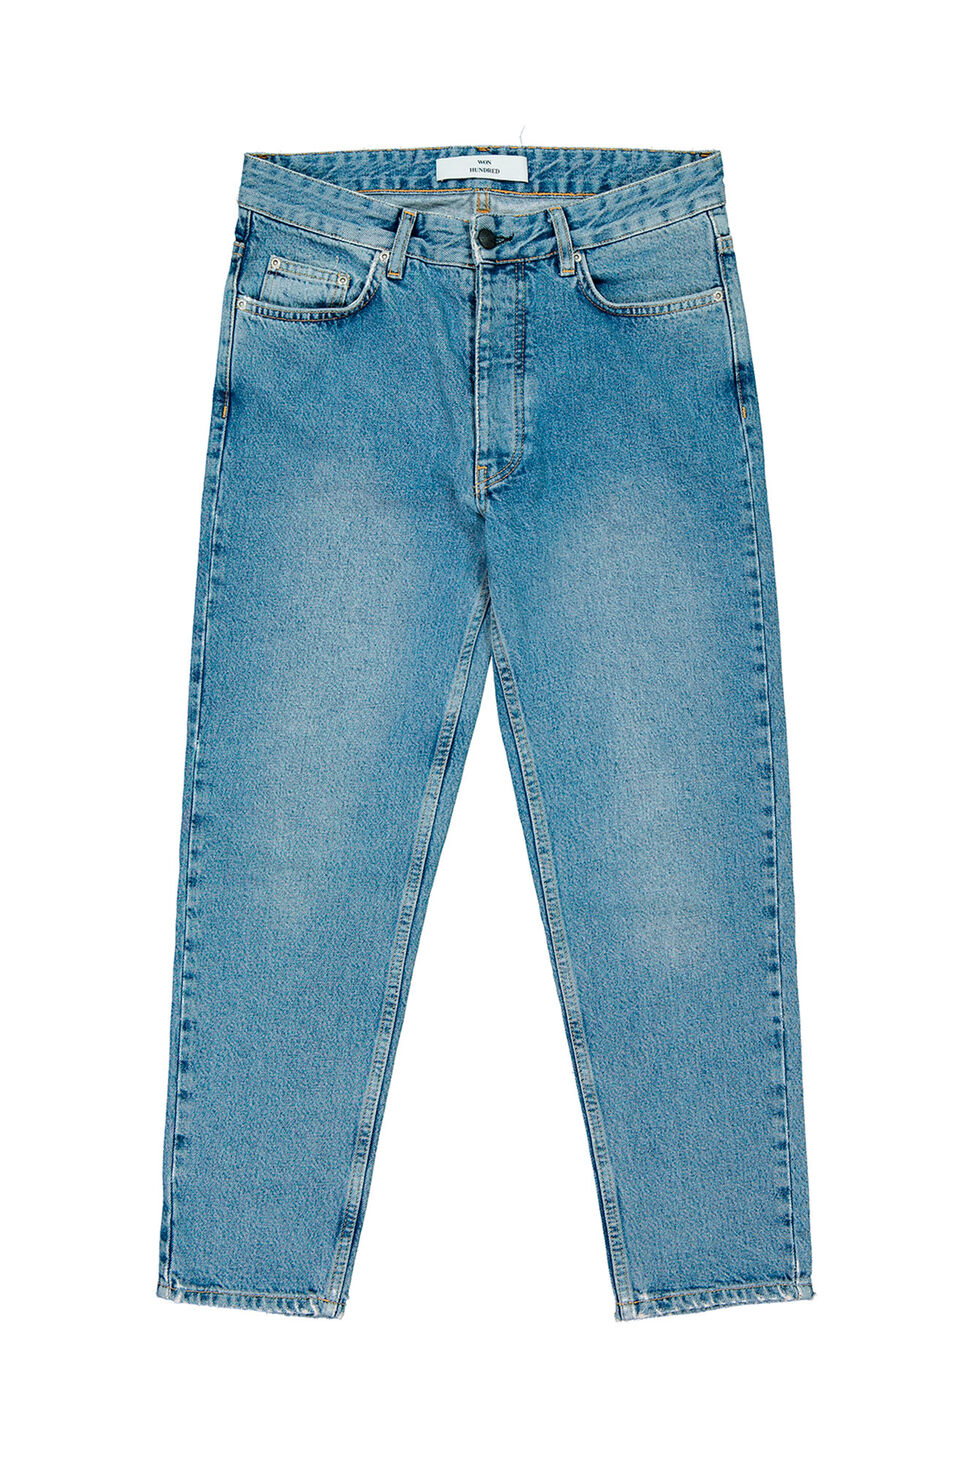 Ben distressed blue 8607-15798, DISTRESSED BLUE